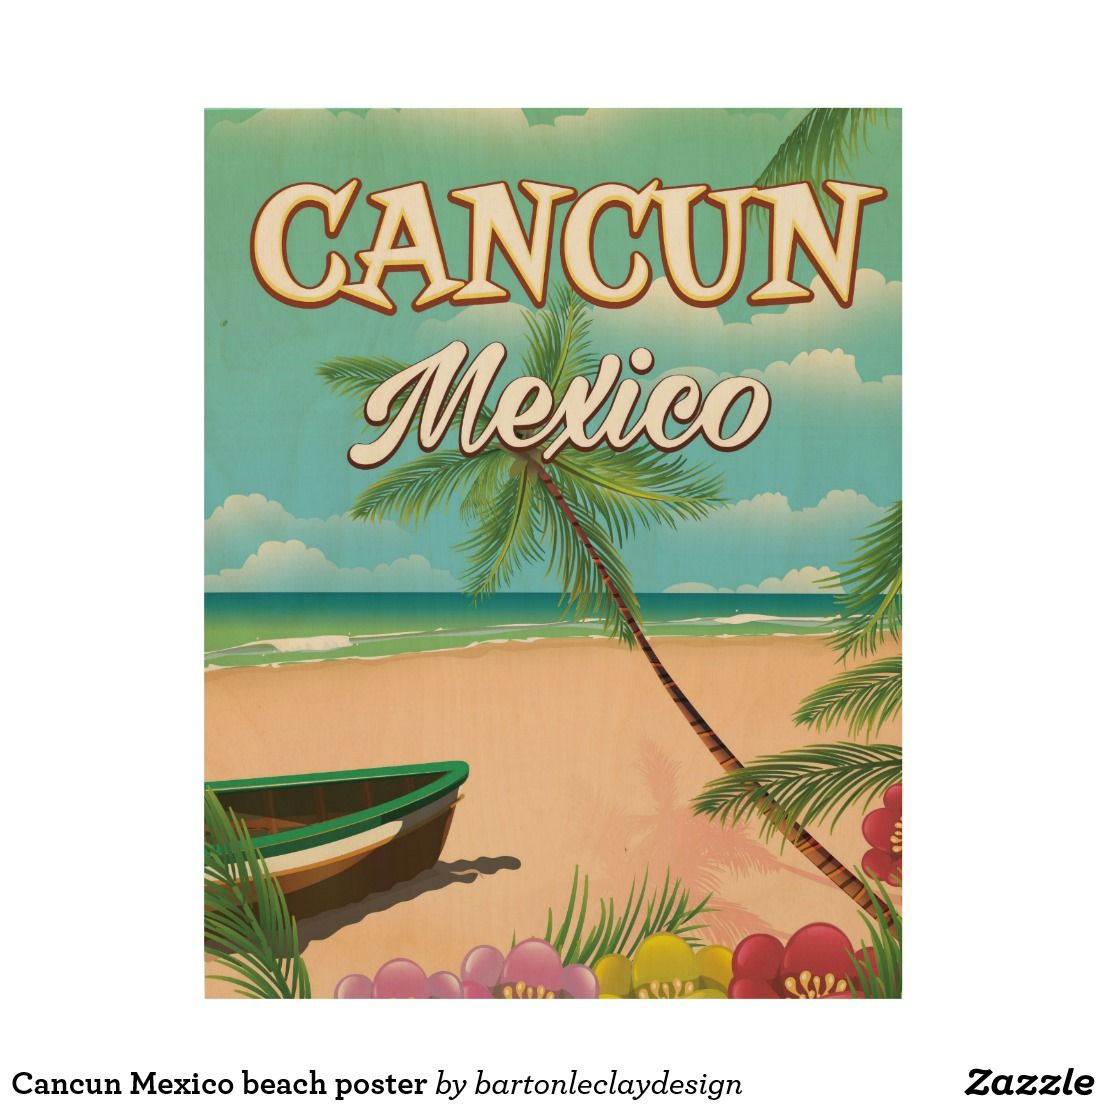 Cancun Mexico Beach Poster Zazzle Com In 2021 Beach Posters Vintage Travel Posters Posters Art Prints